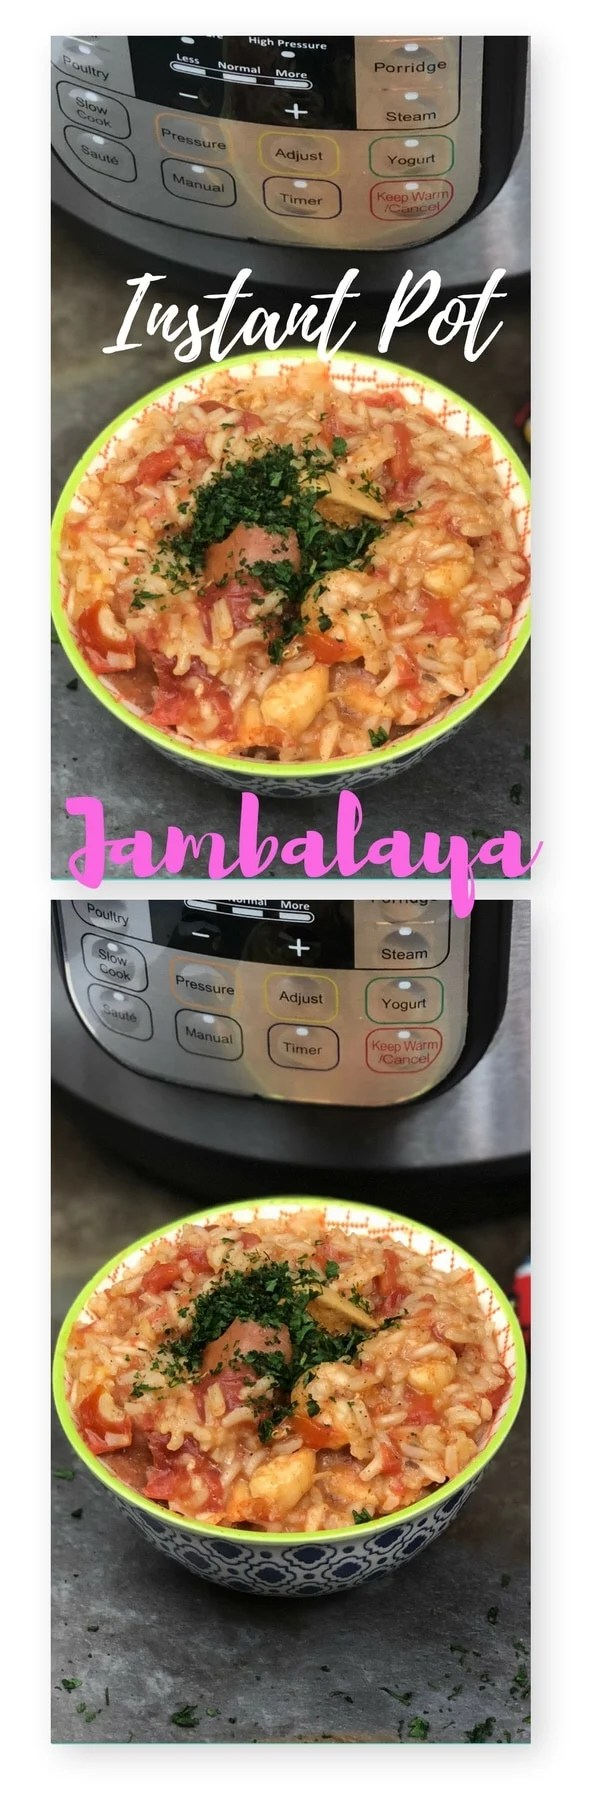 Change things up and add some spice to your next meal! This Instant Pot Jambalaya is a mix of andouille sausage, fresh shrimp, and chicken with a mix of rice and Cajun seasonings that will make your mouth water. A one-pot meal that takes no time, and leaves your family reaching for seconds, and maybe even thirds. This Instant Pot Jambalaya recipe is not only a cinch to make, but so filling. If you find you have leftovers it reheats great so you can take for lunch the next day.